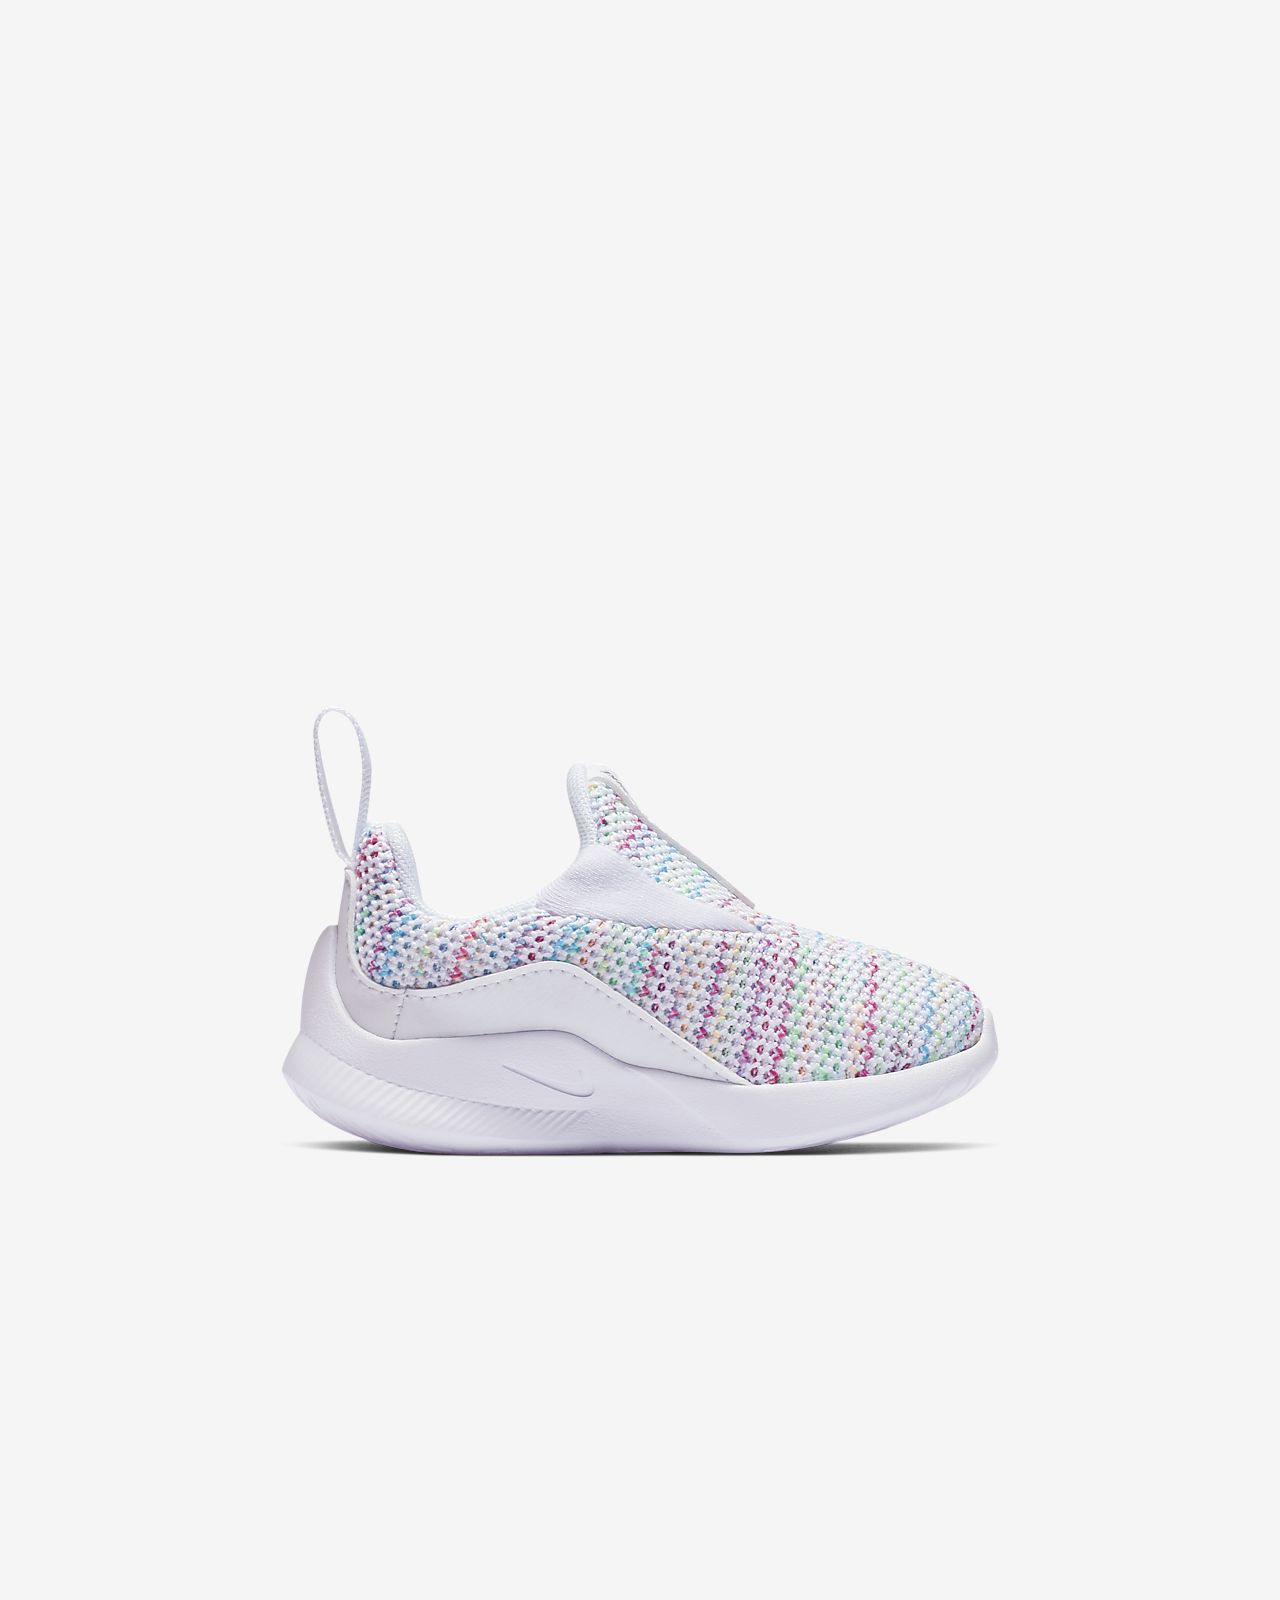 ab47f9dce228 Nike Viale Space Dye Infant Toddler Shoe. Nike.com